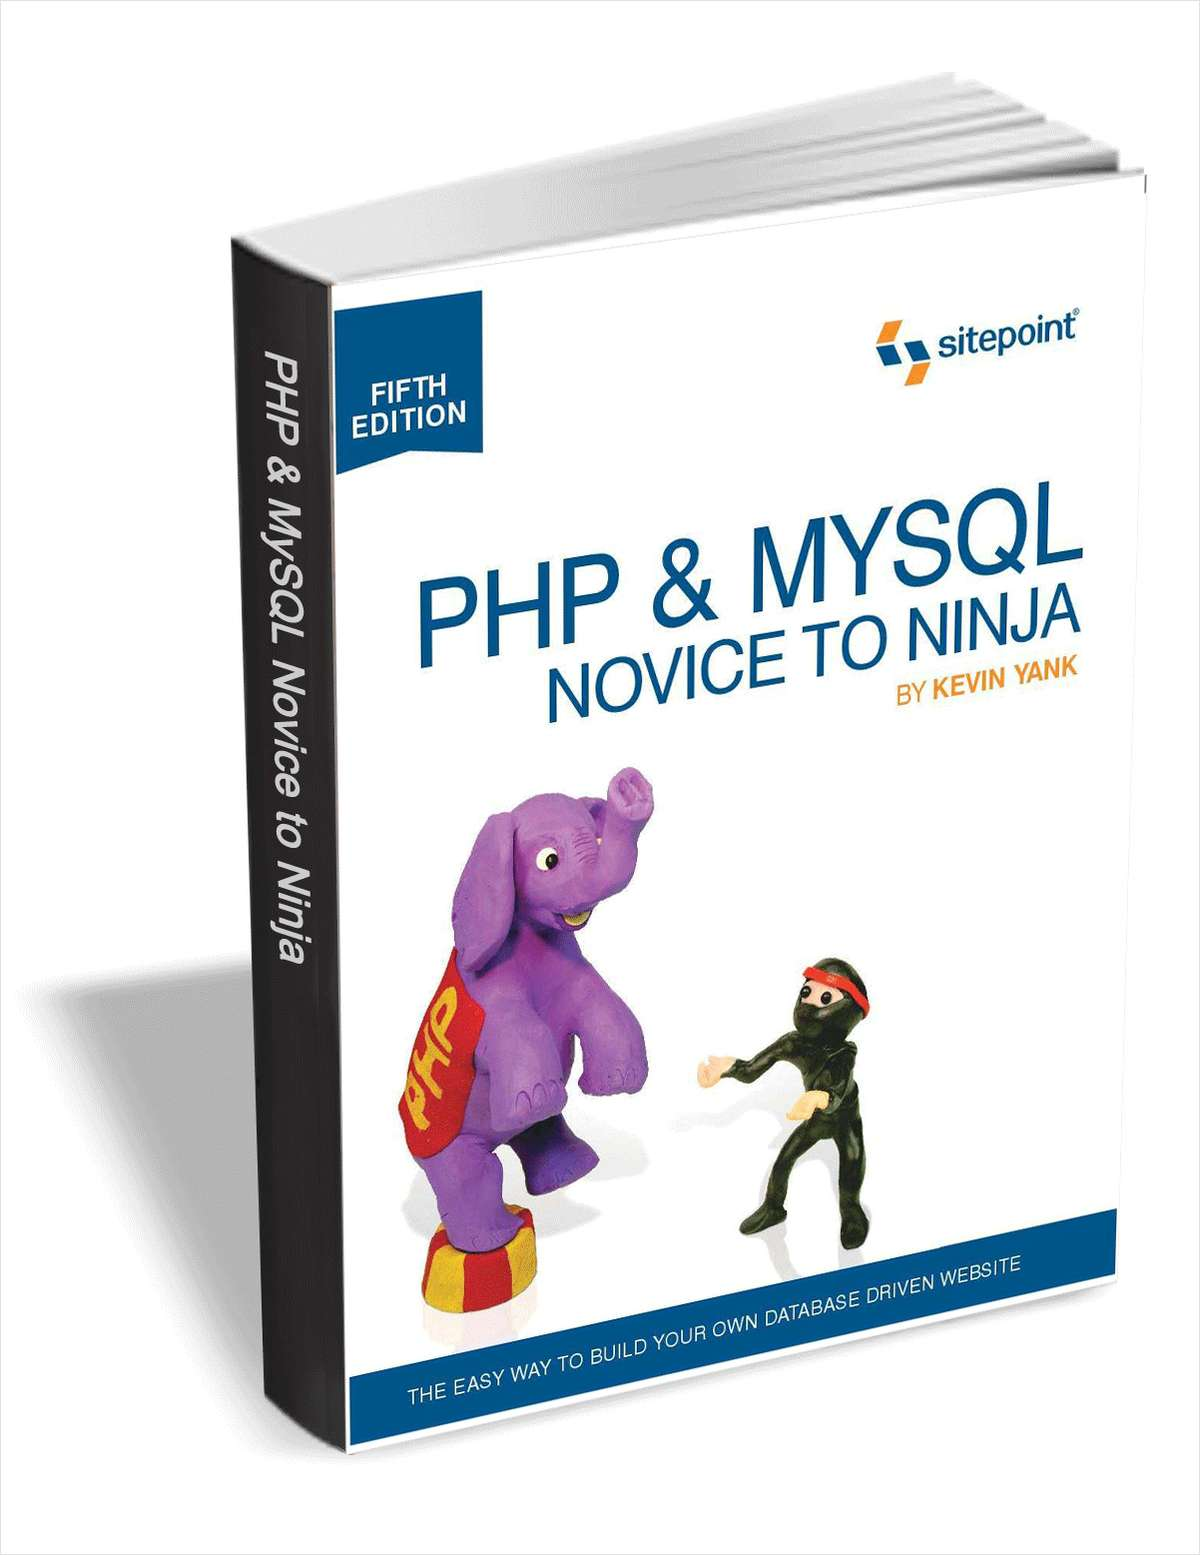 PHP & MySQL - Novice to Ninja ($29 Value FREE For a Limited Time)